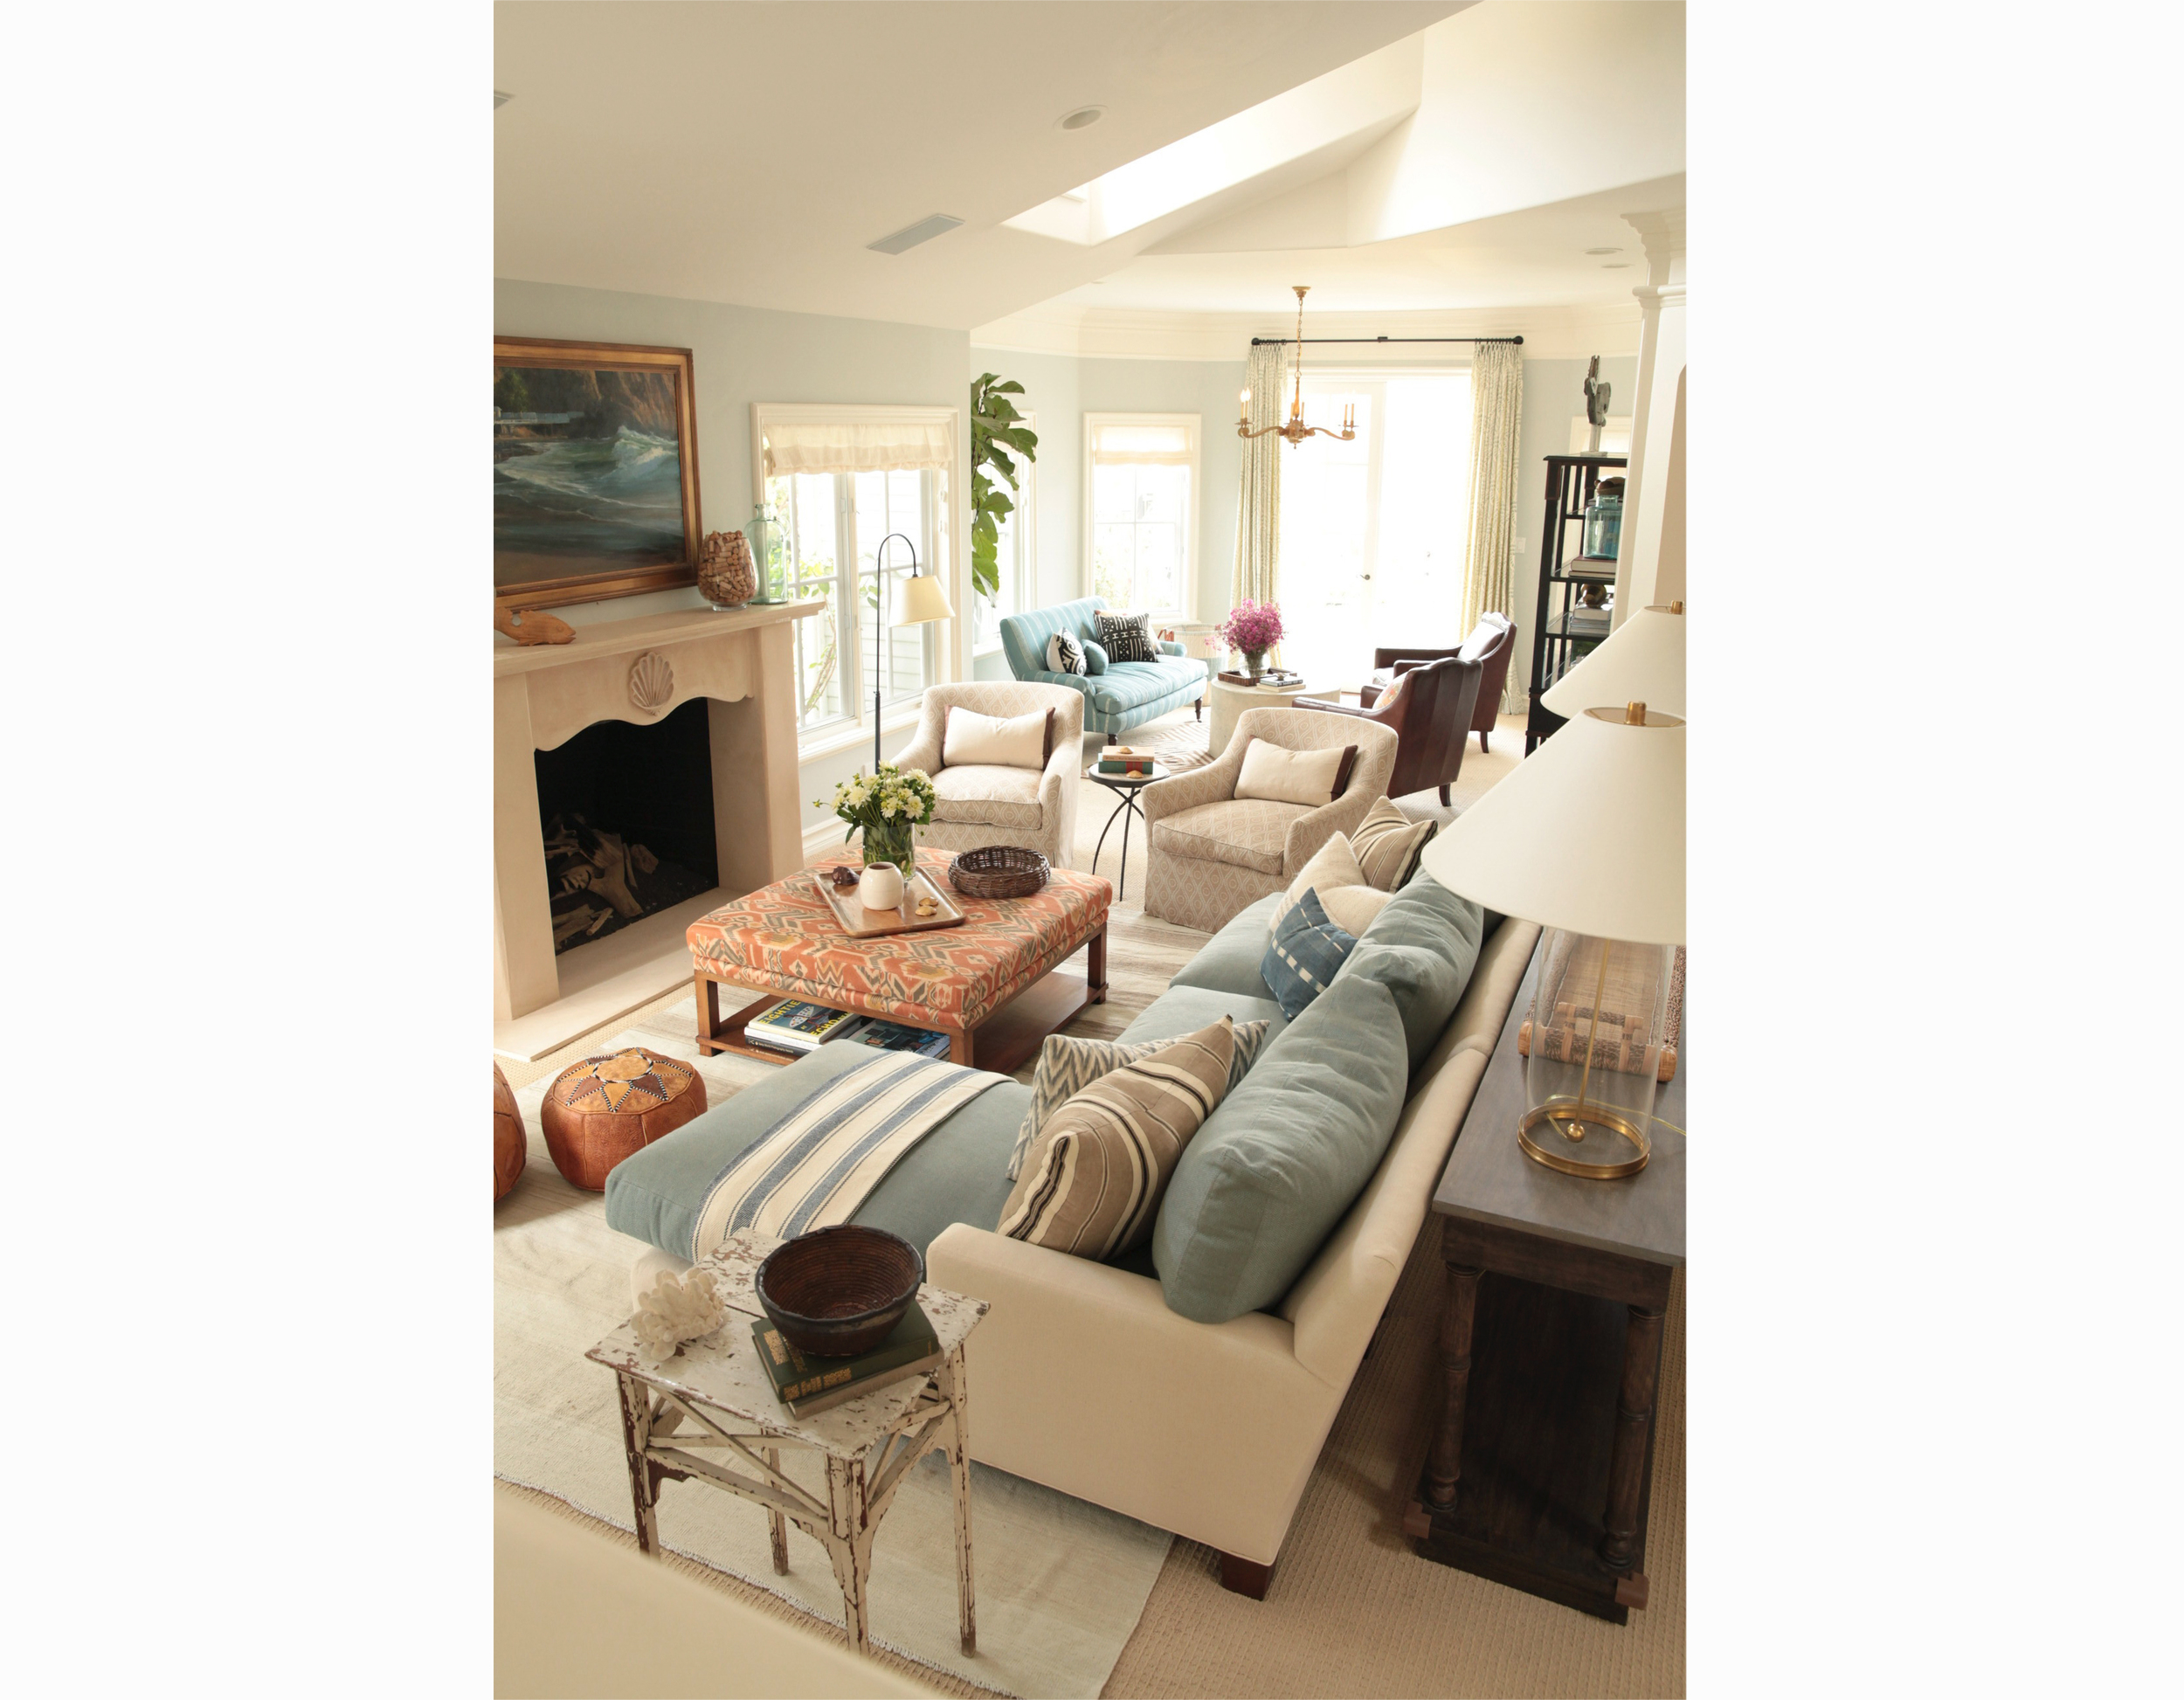 corona del mar blue living room eclectic  interior design orange county brittany stiles two toned sofa 234.jpg